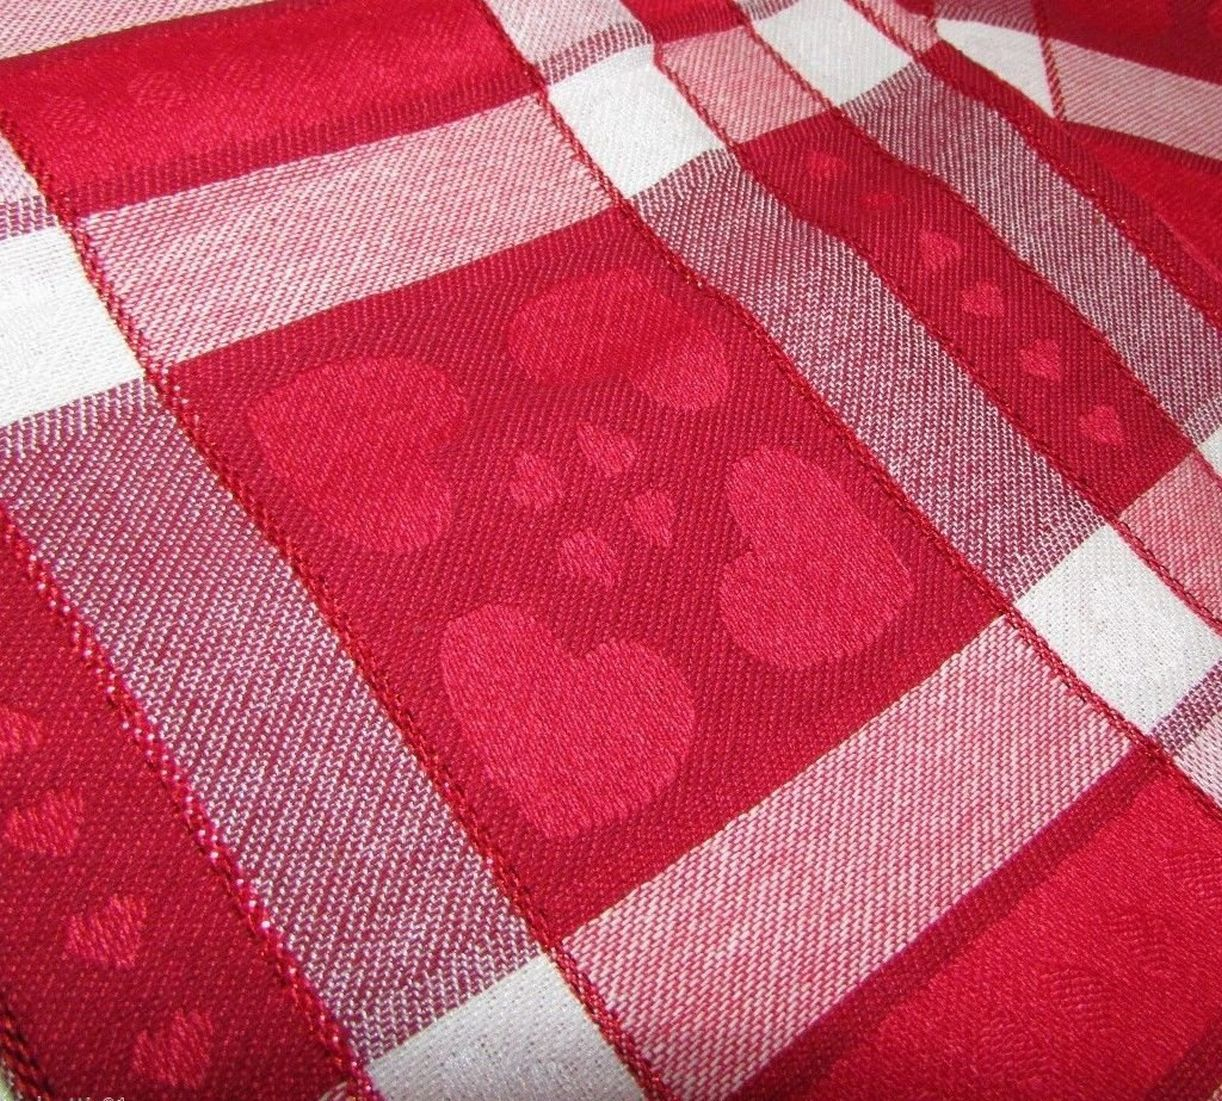 Share The Love Valentine Day Red Heart Plaid Tablecloth Fabric Table